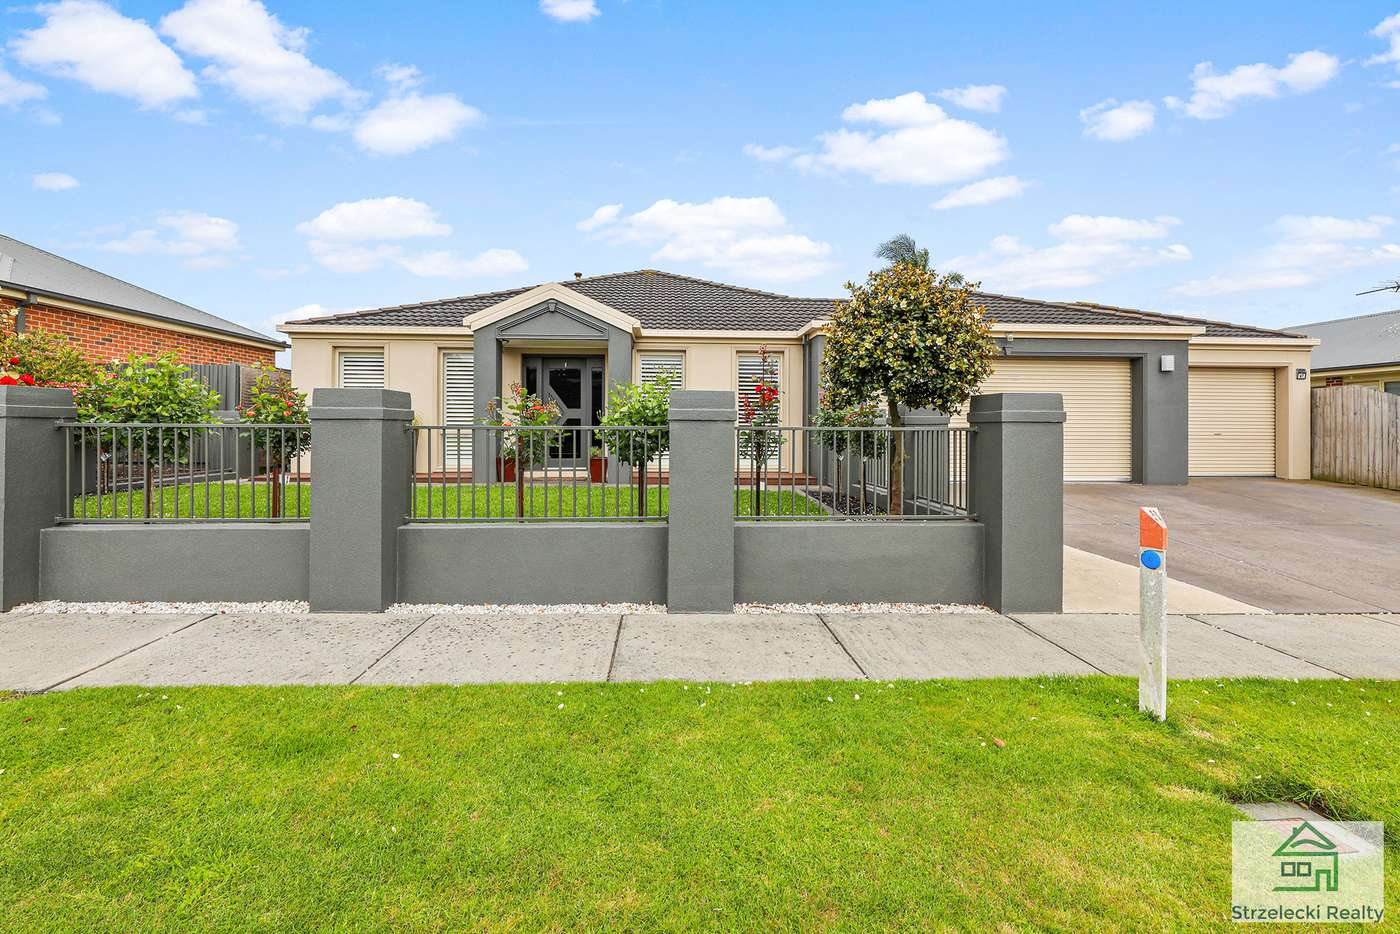 Main view of Homely house listing, 47 Davey Dr, Trafalgar VIC 3824